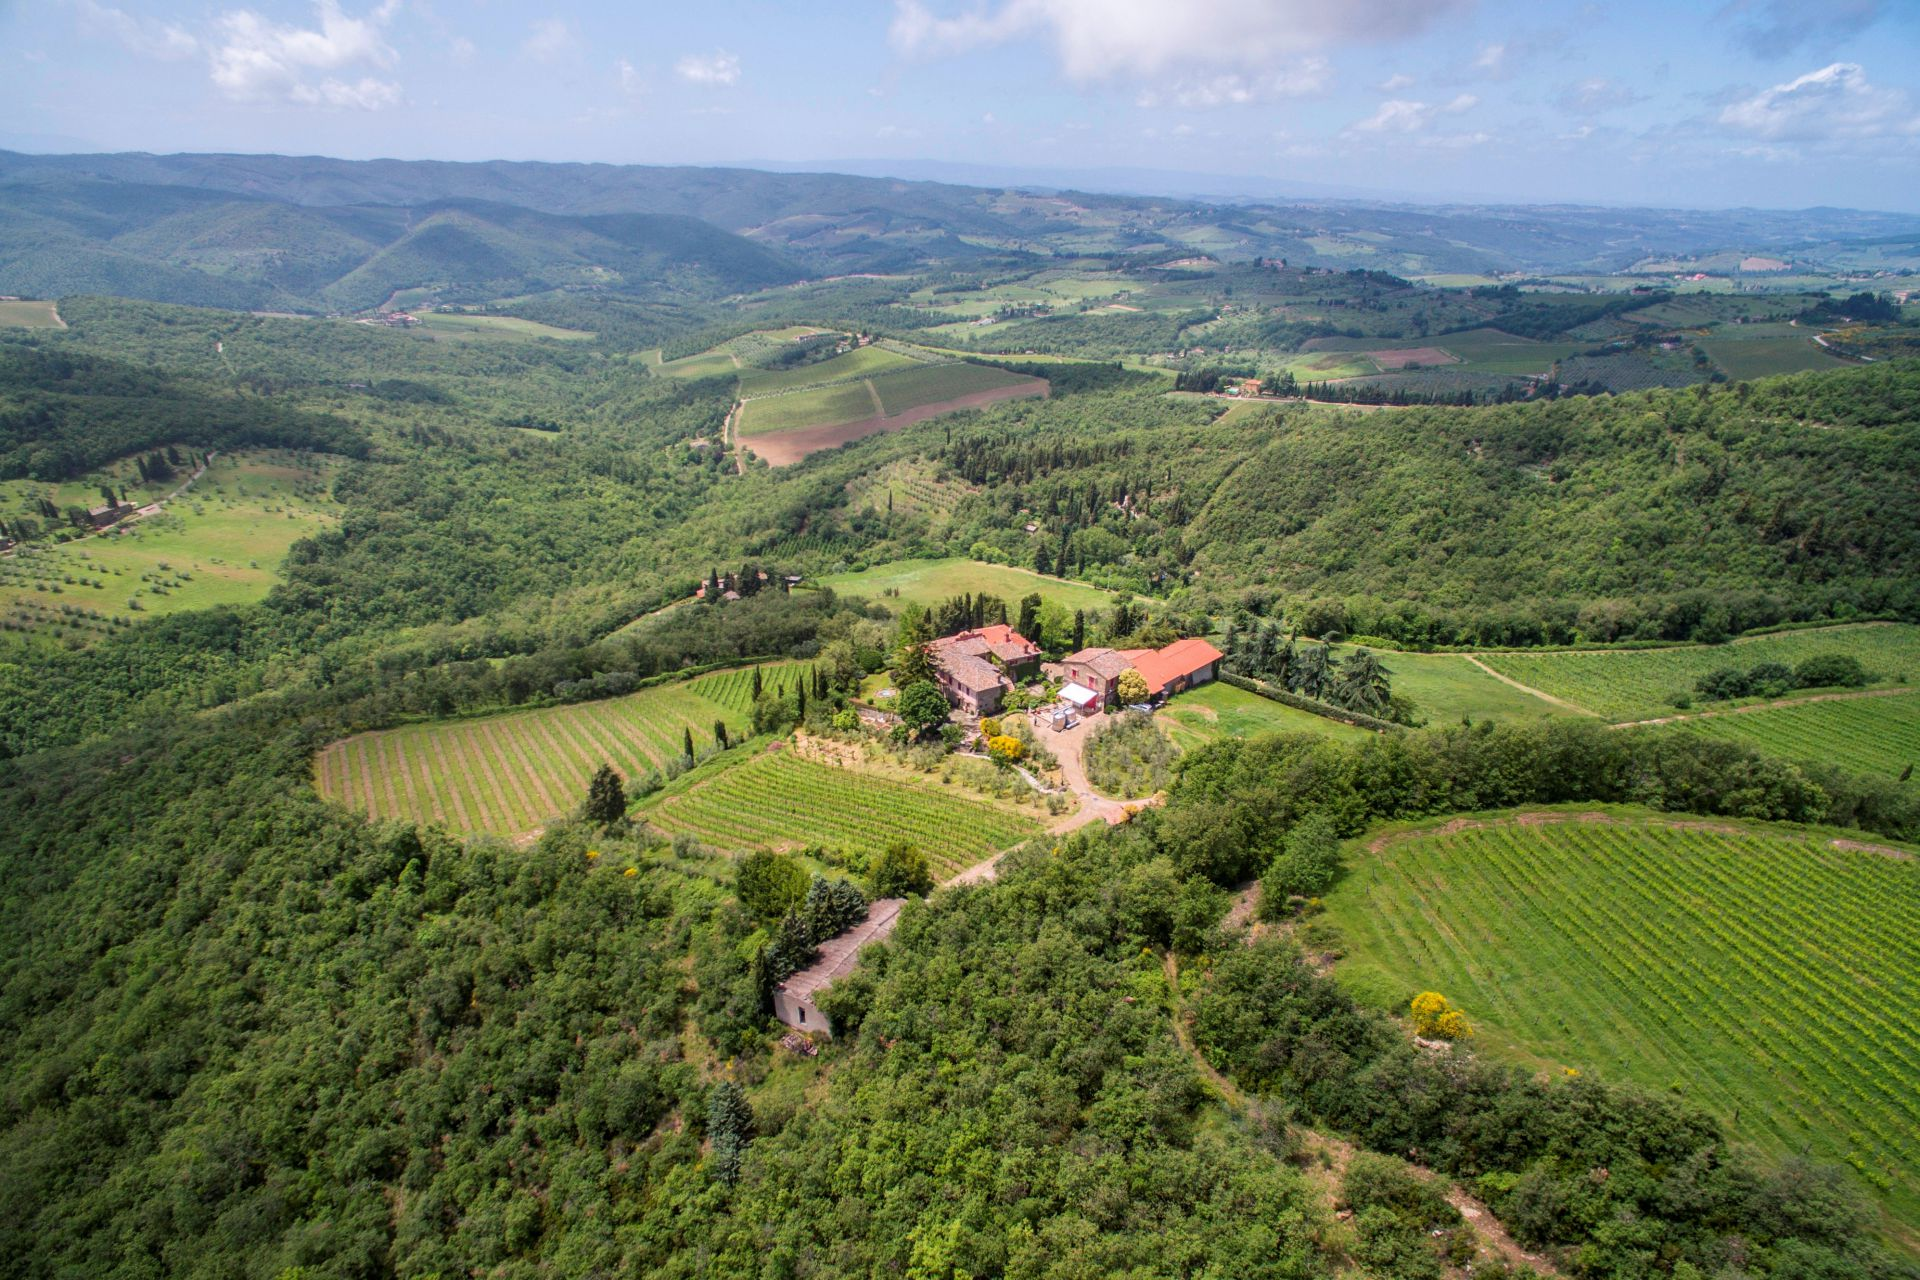 MULTI-AWARD WINNING WINERY WITH VILLA FOR SALE IN TUSCANY